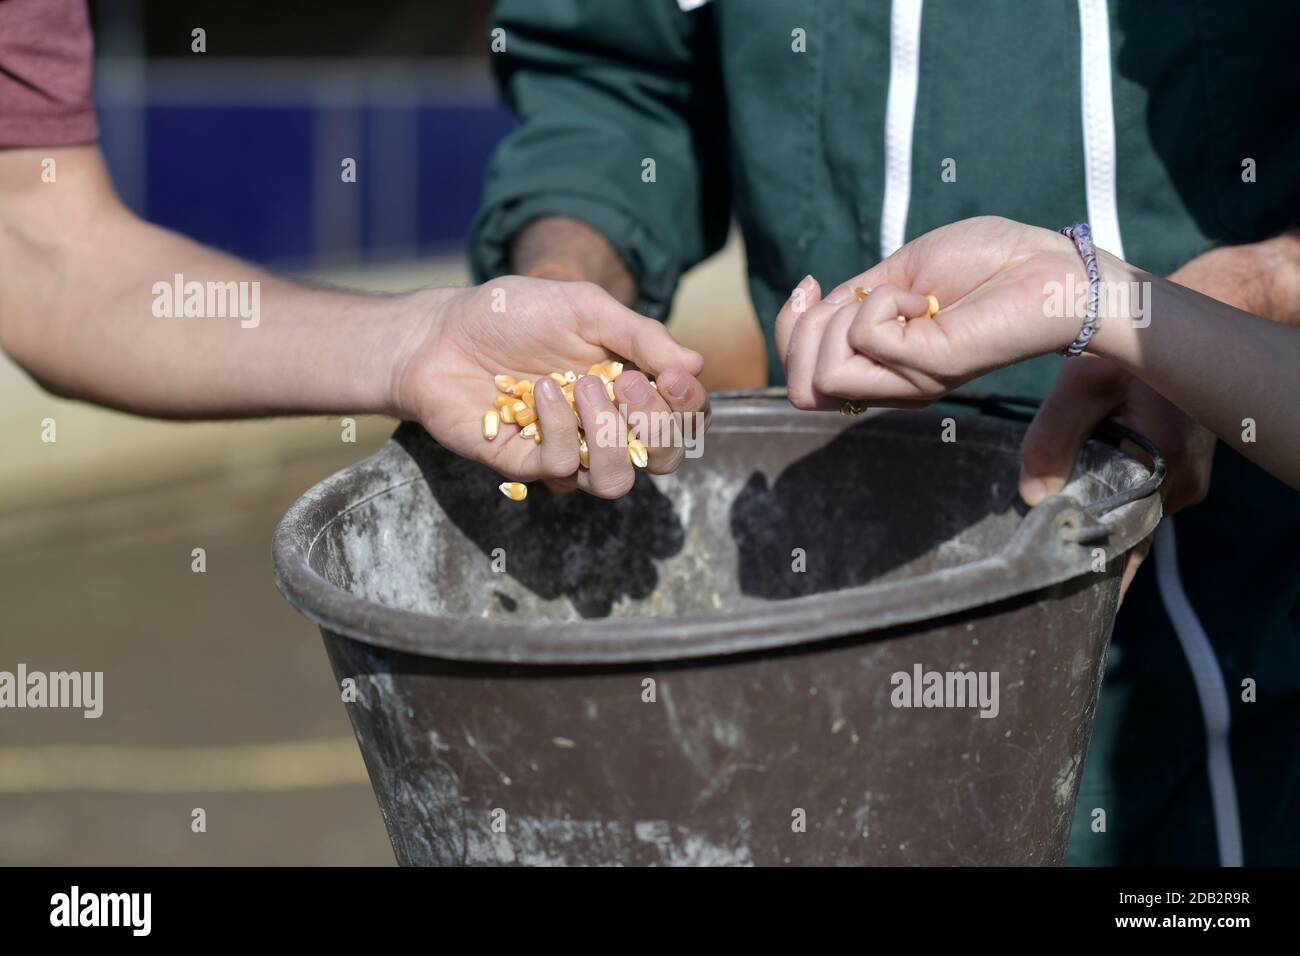 Closeup of hands grabing corn to feed cattle Stock Photo